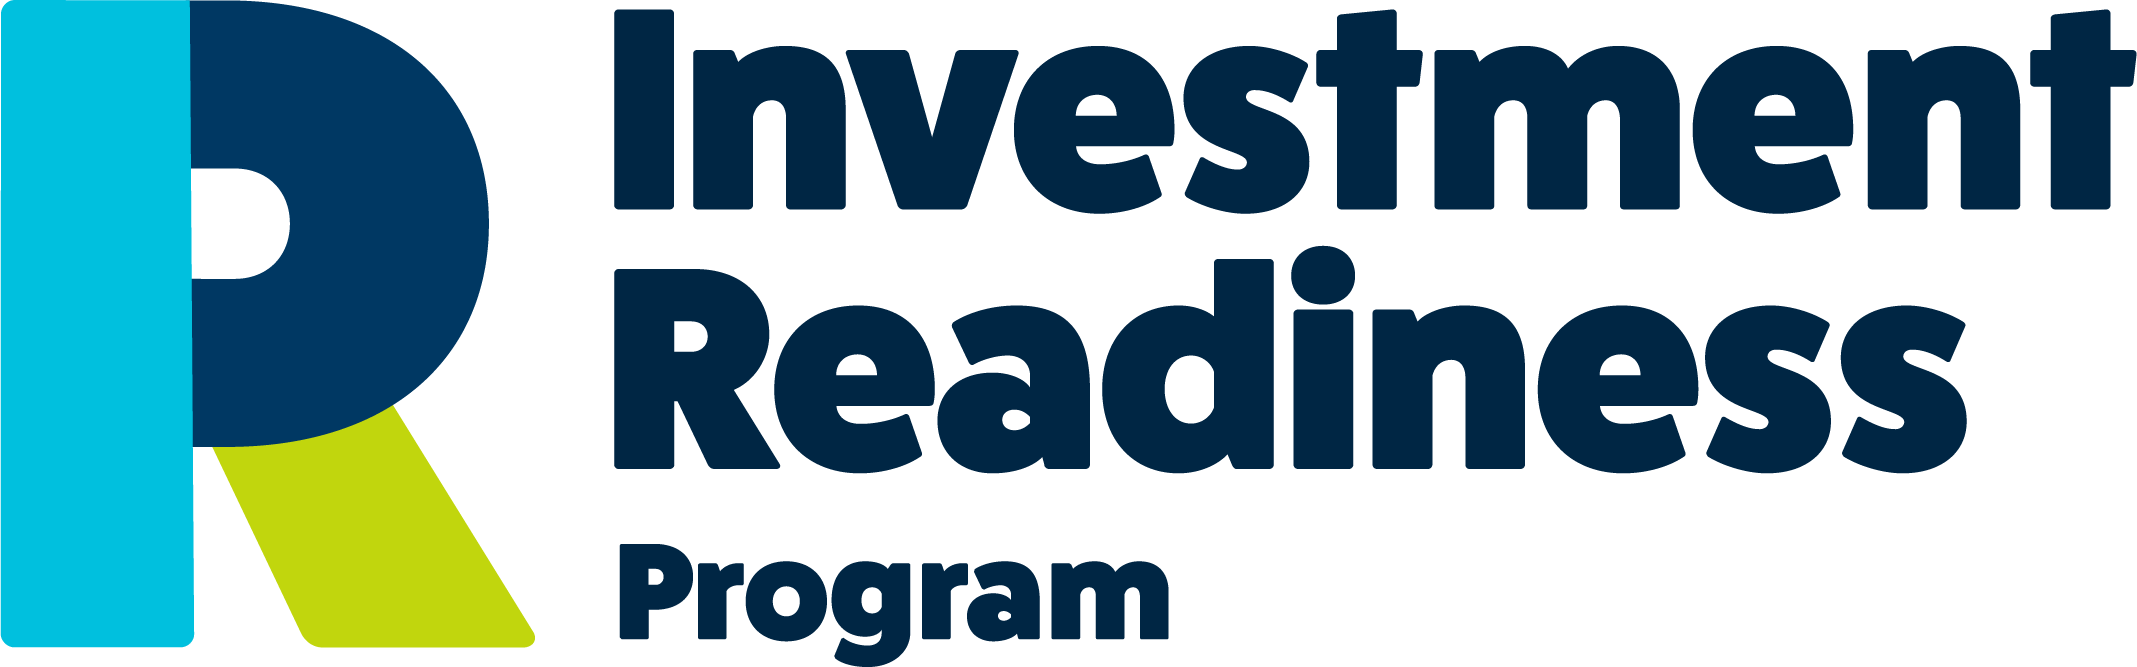 Investment Readiness Program